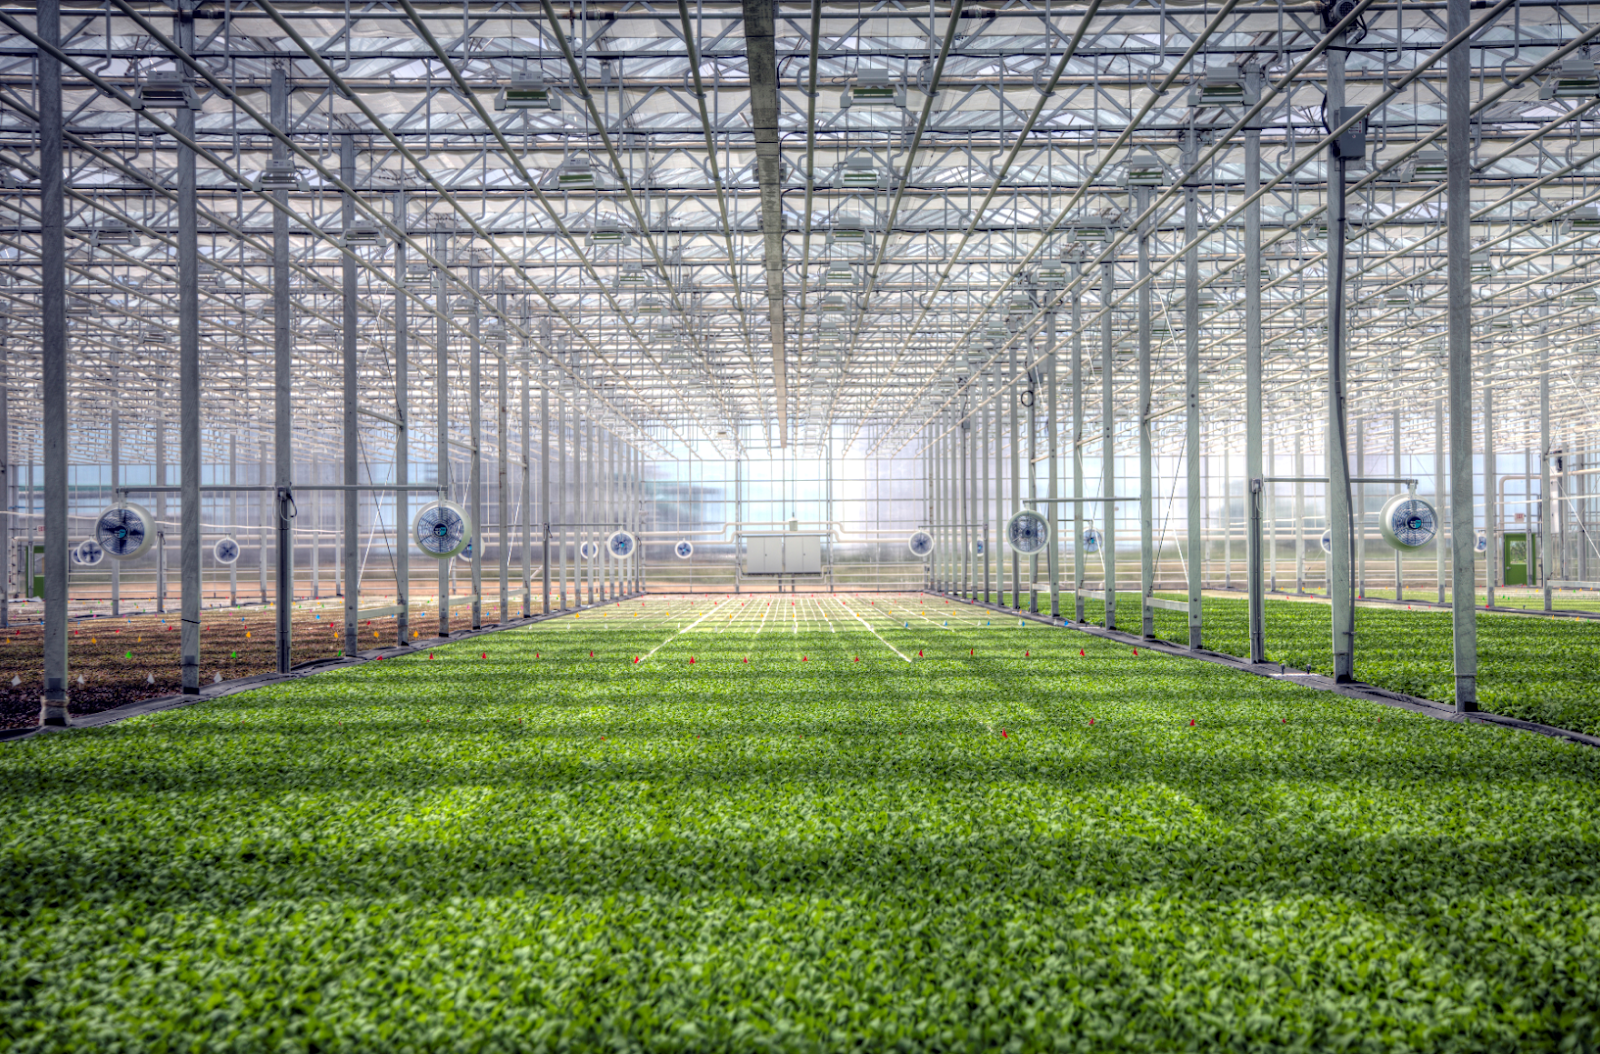 Rendering of a BrightFarms greenhouse. Salad greens grow on floating rafts in a hydroponic system. | Source: BrightFarms